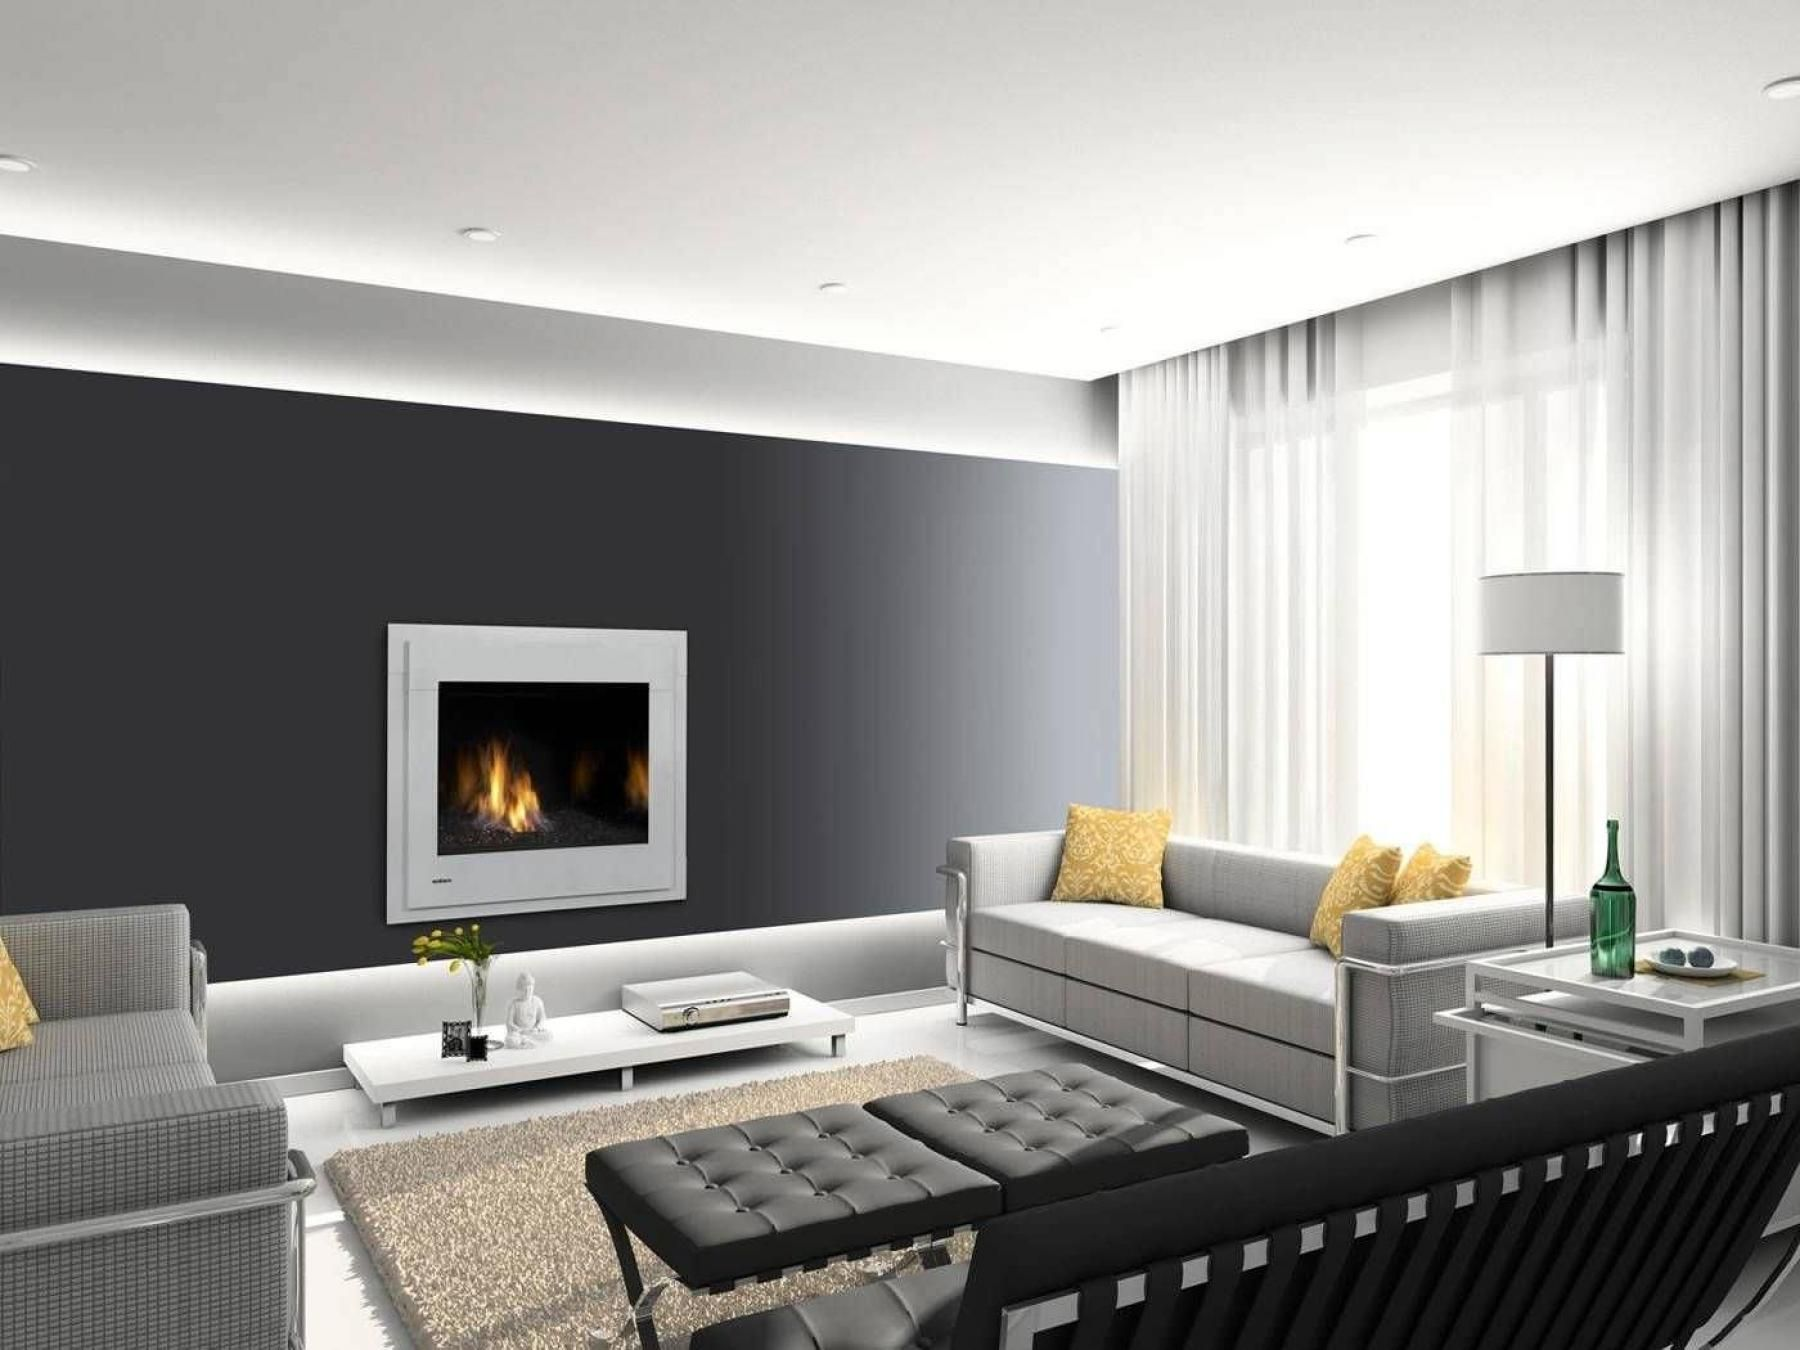 Grey Wall Living Room fashionable modern decorative fireplace screen insert on dark gray